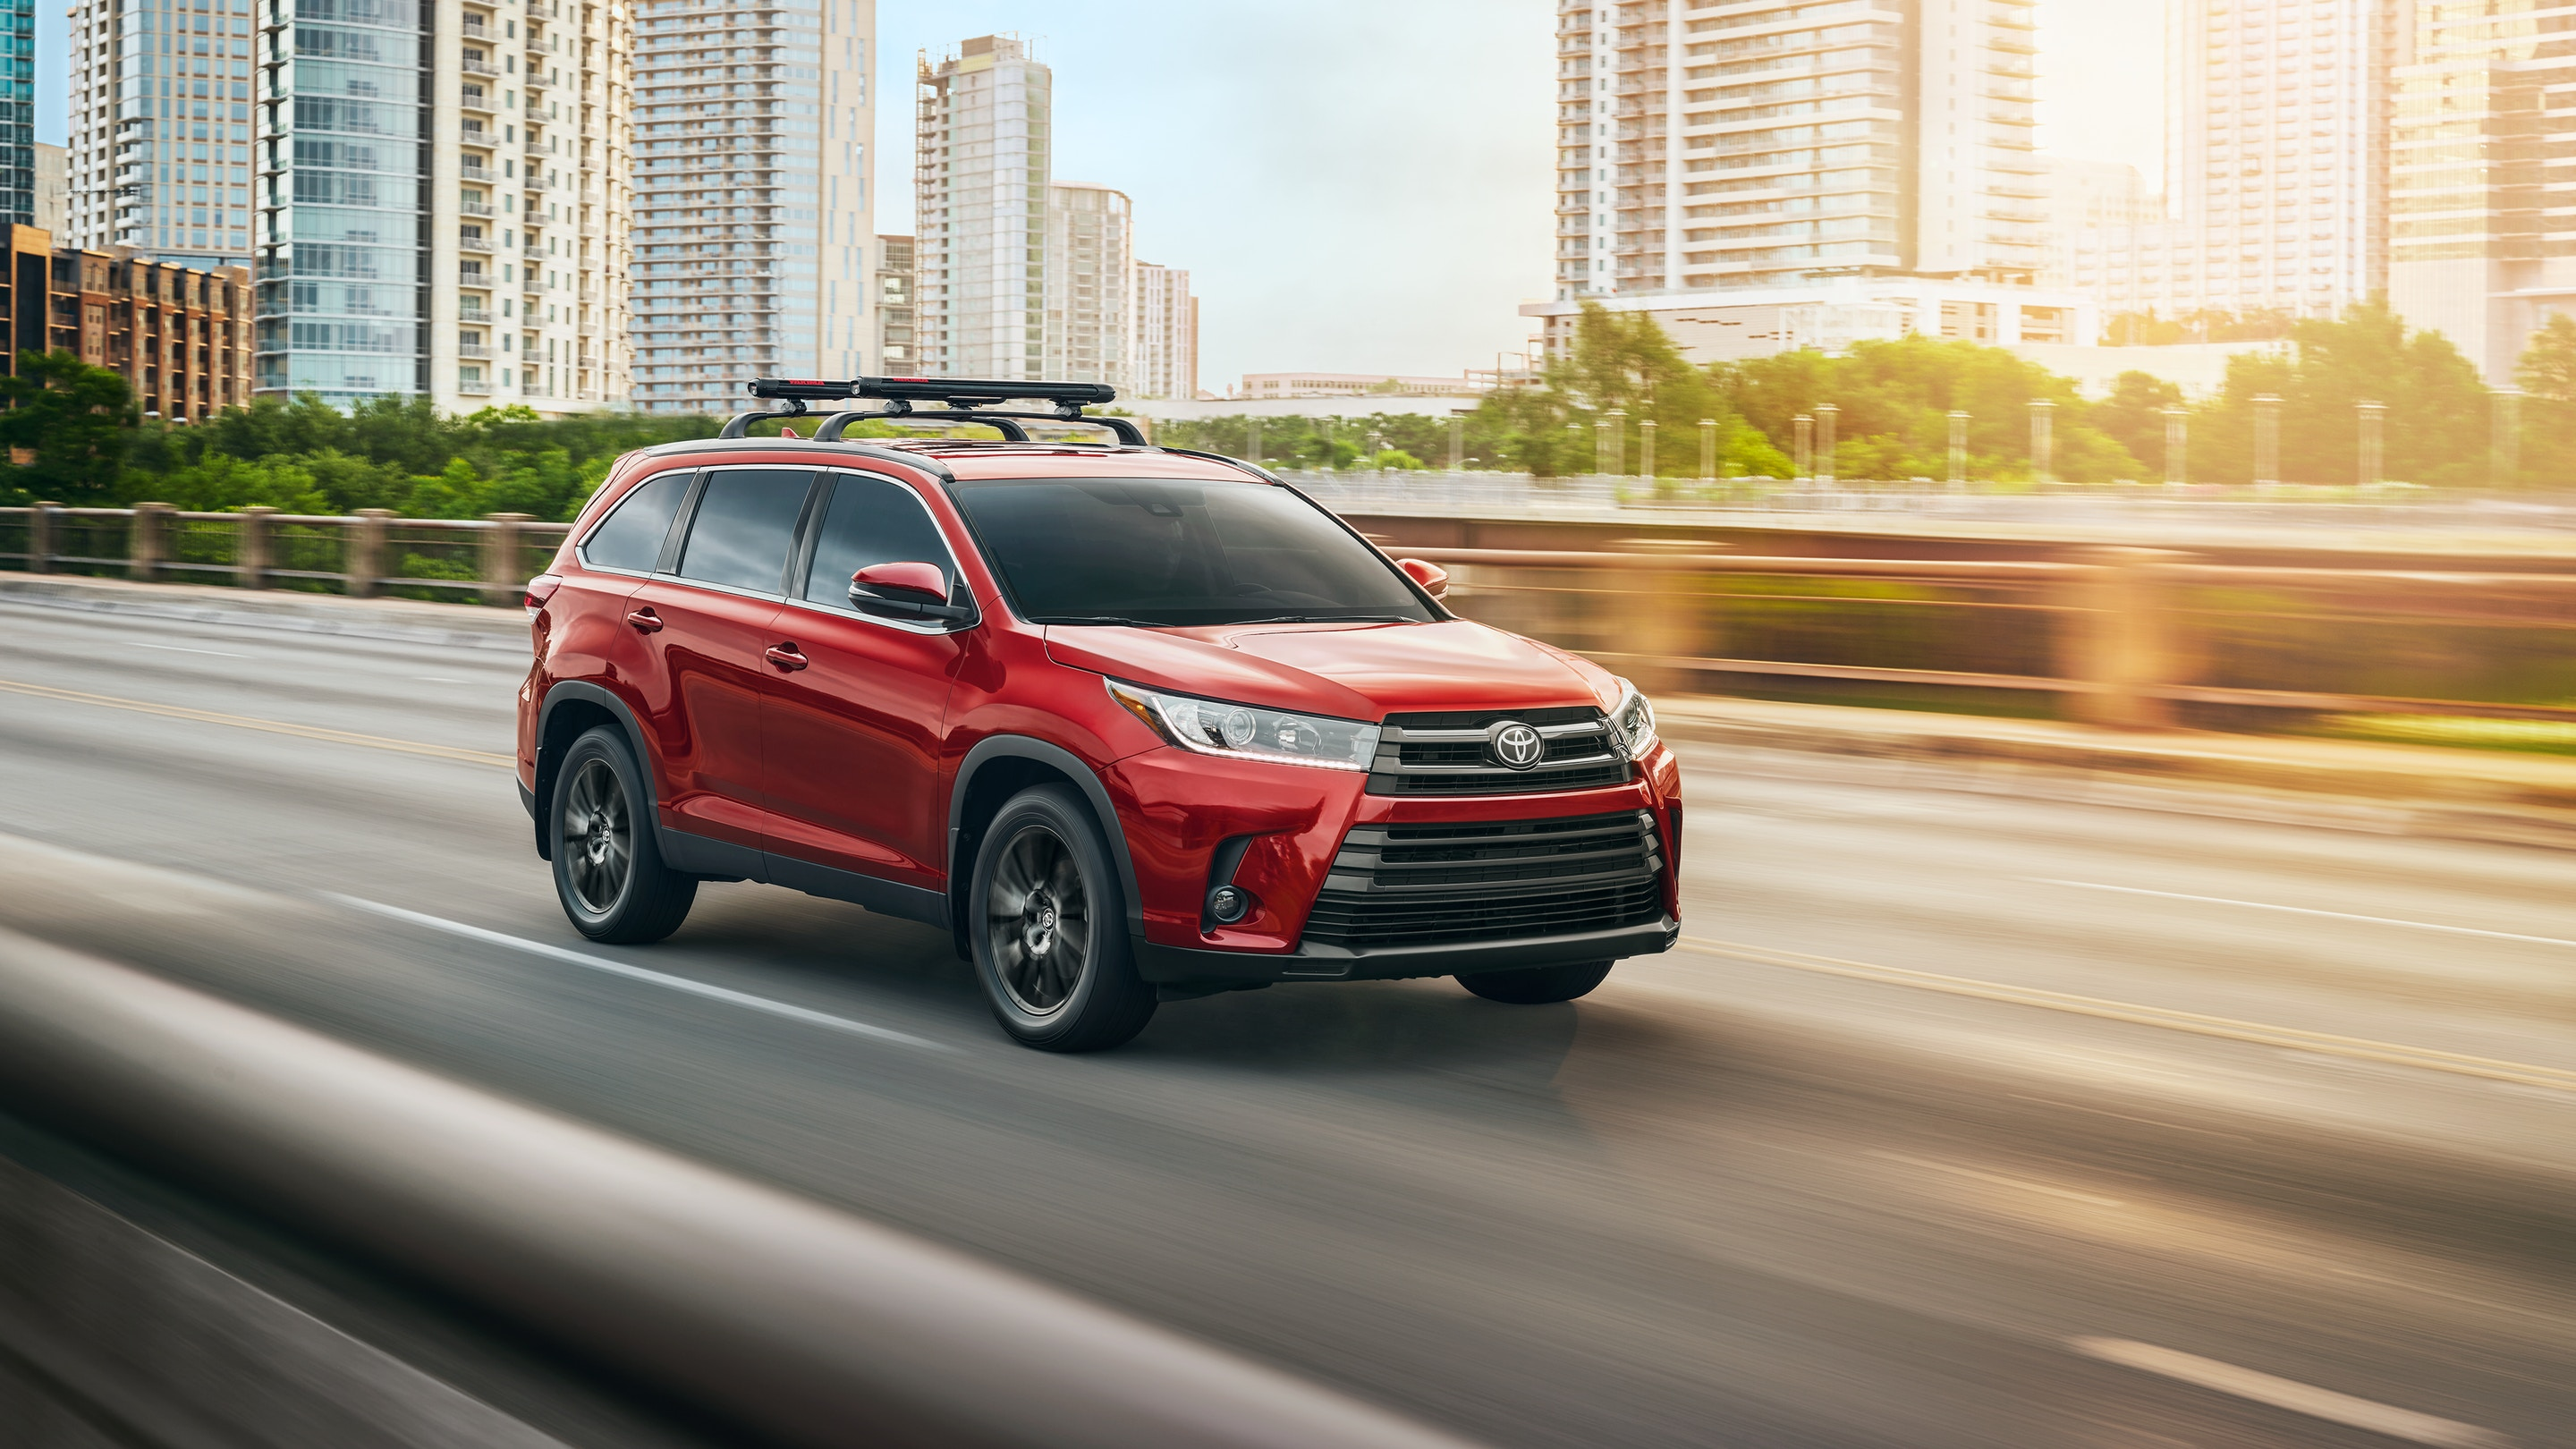 2019 Toyota Highlander for Sale near Brookings, SD